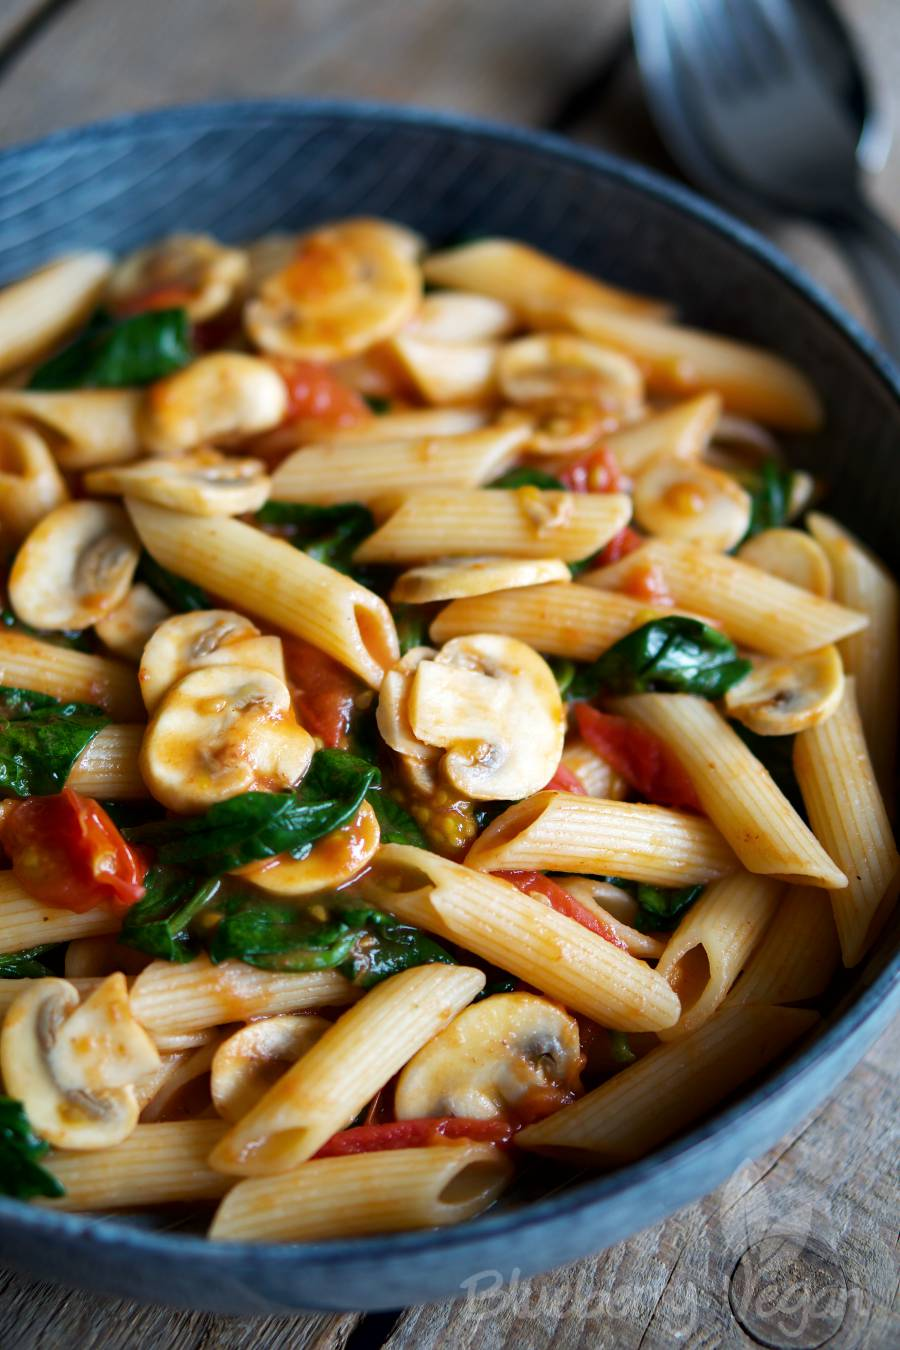 Quick Pasta with Tomatoes, Mushrooms and Spinach